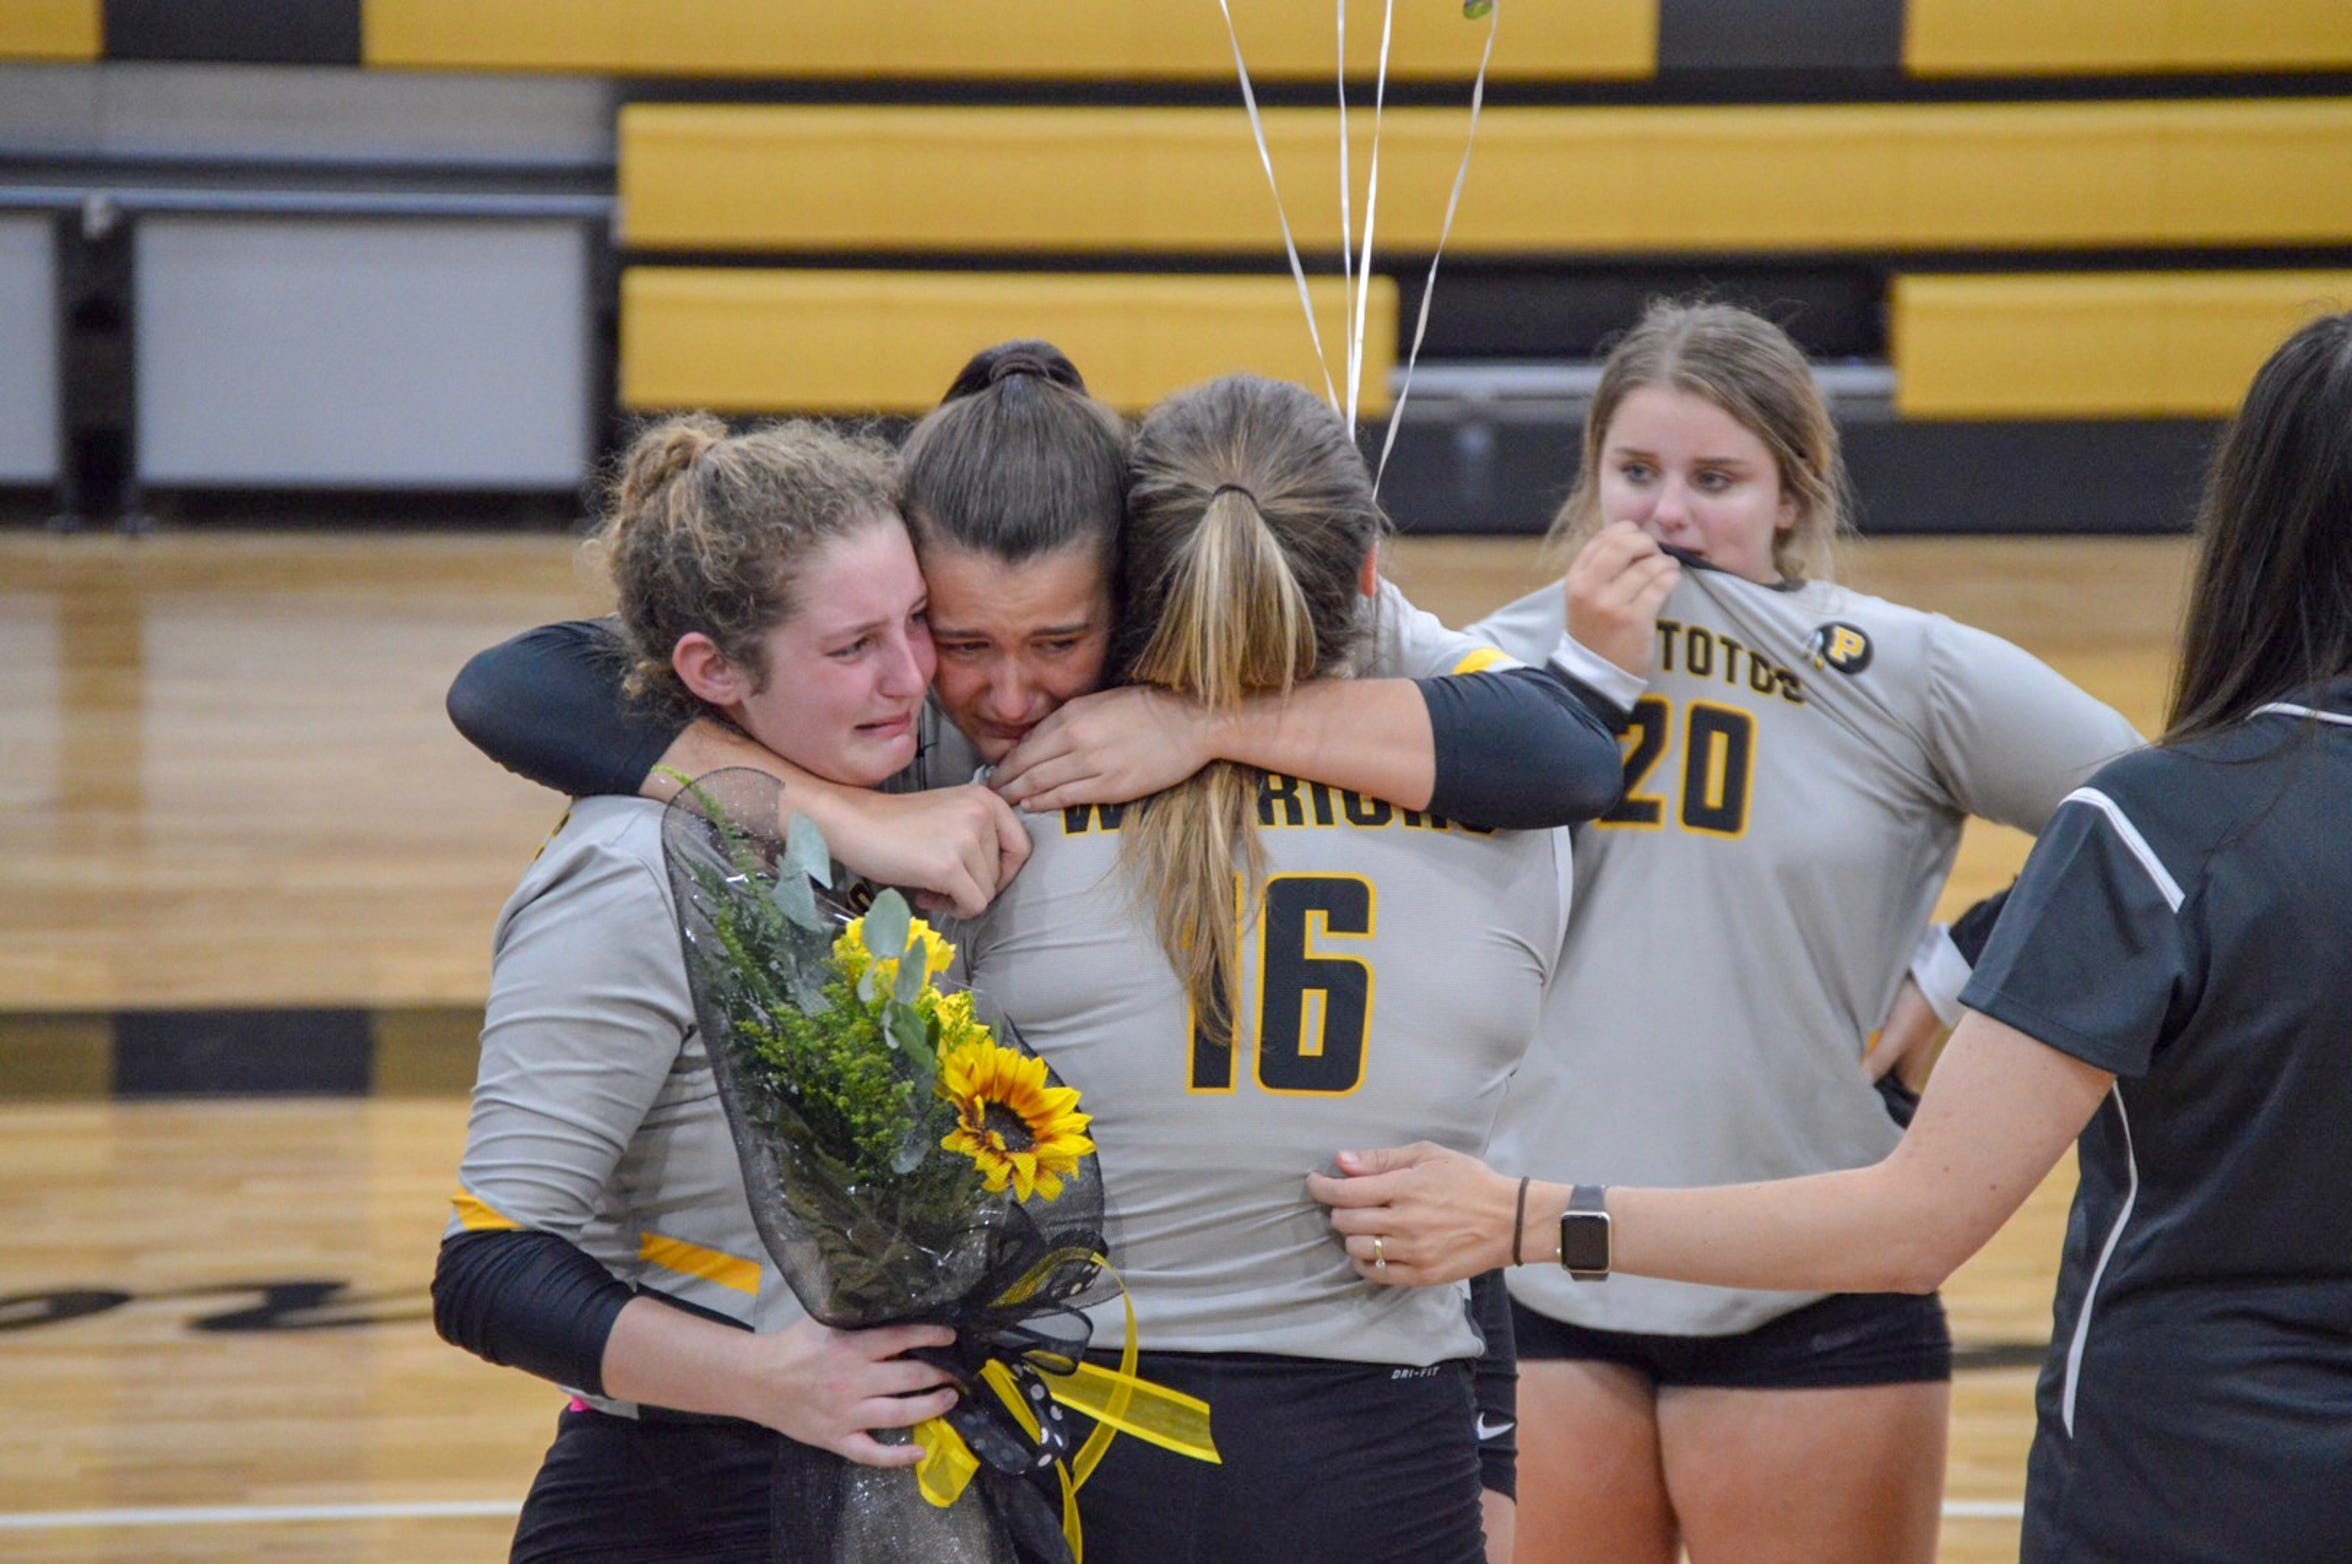 Taylor Hughes embraces her teammates and cries at New Hope High School after the final volleyball game of her high school career on Aug. 30, 2018. Her teammates brought her balloons and flowers.